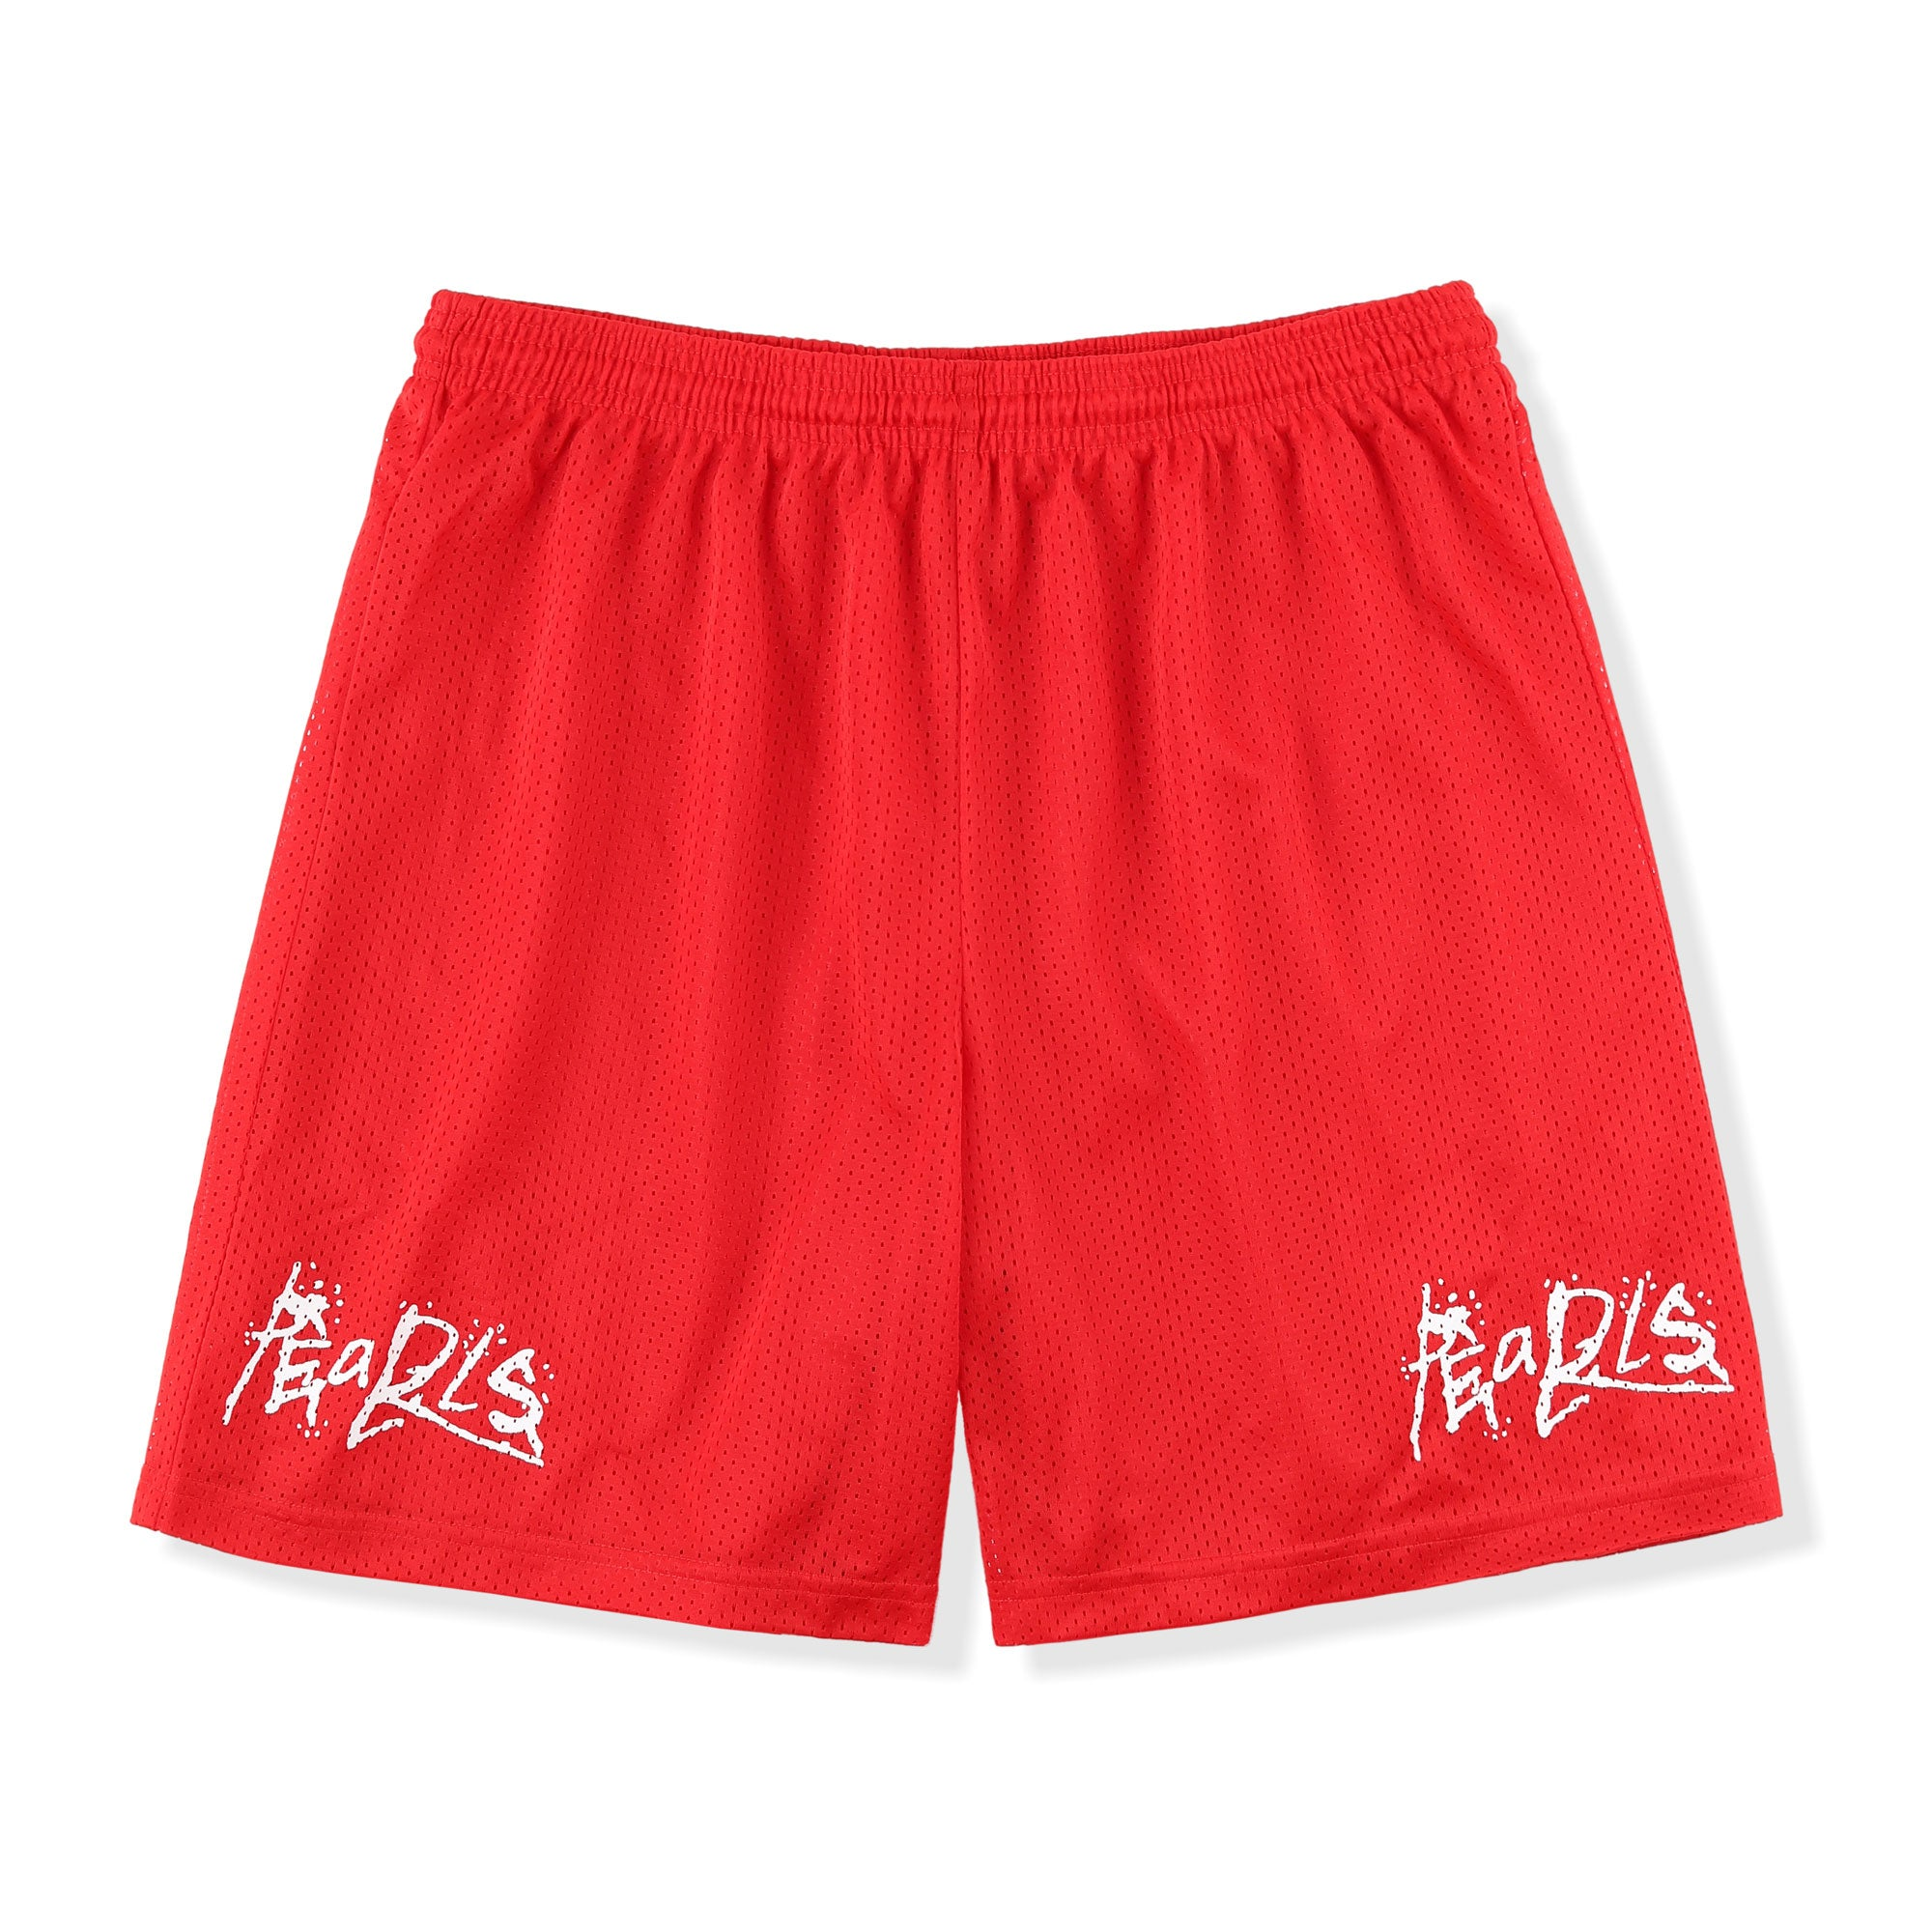 Pearls Scratch Shorts Product Photo #1